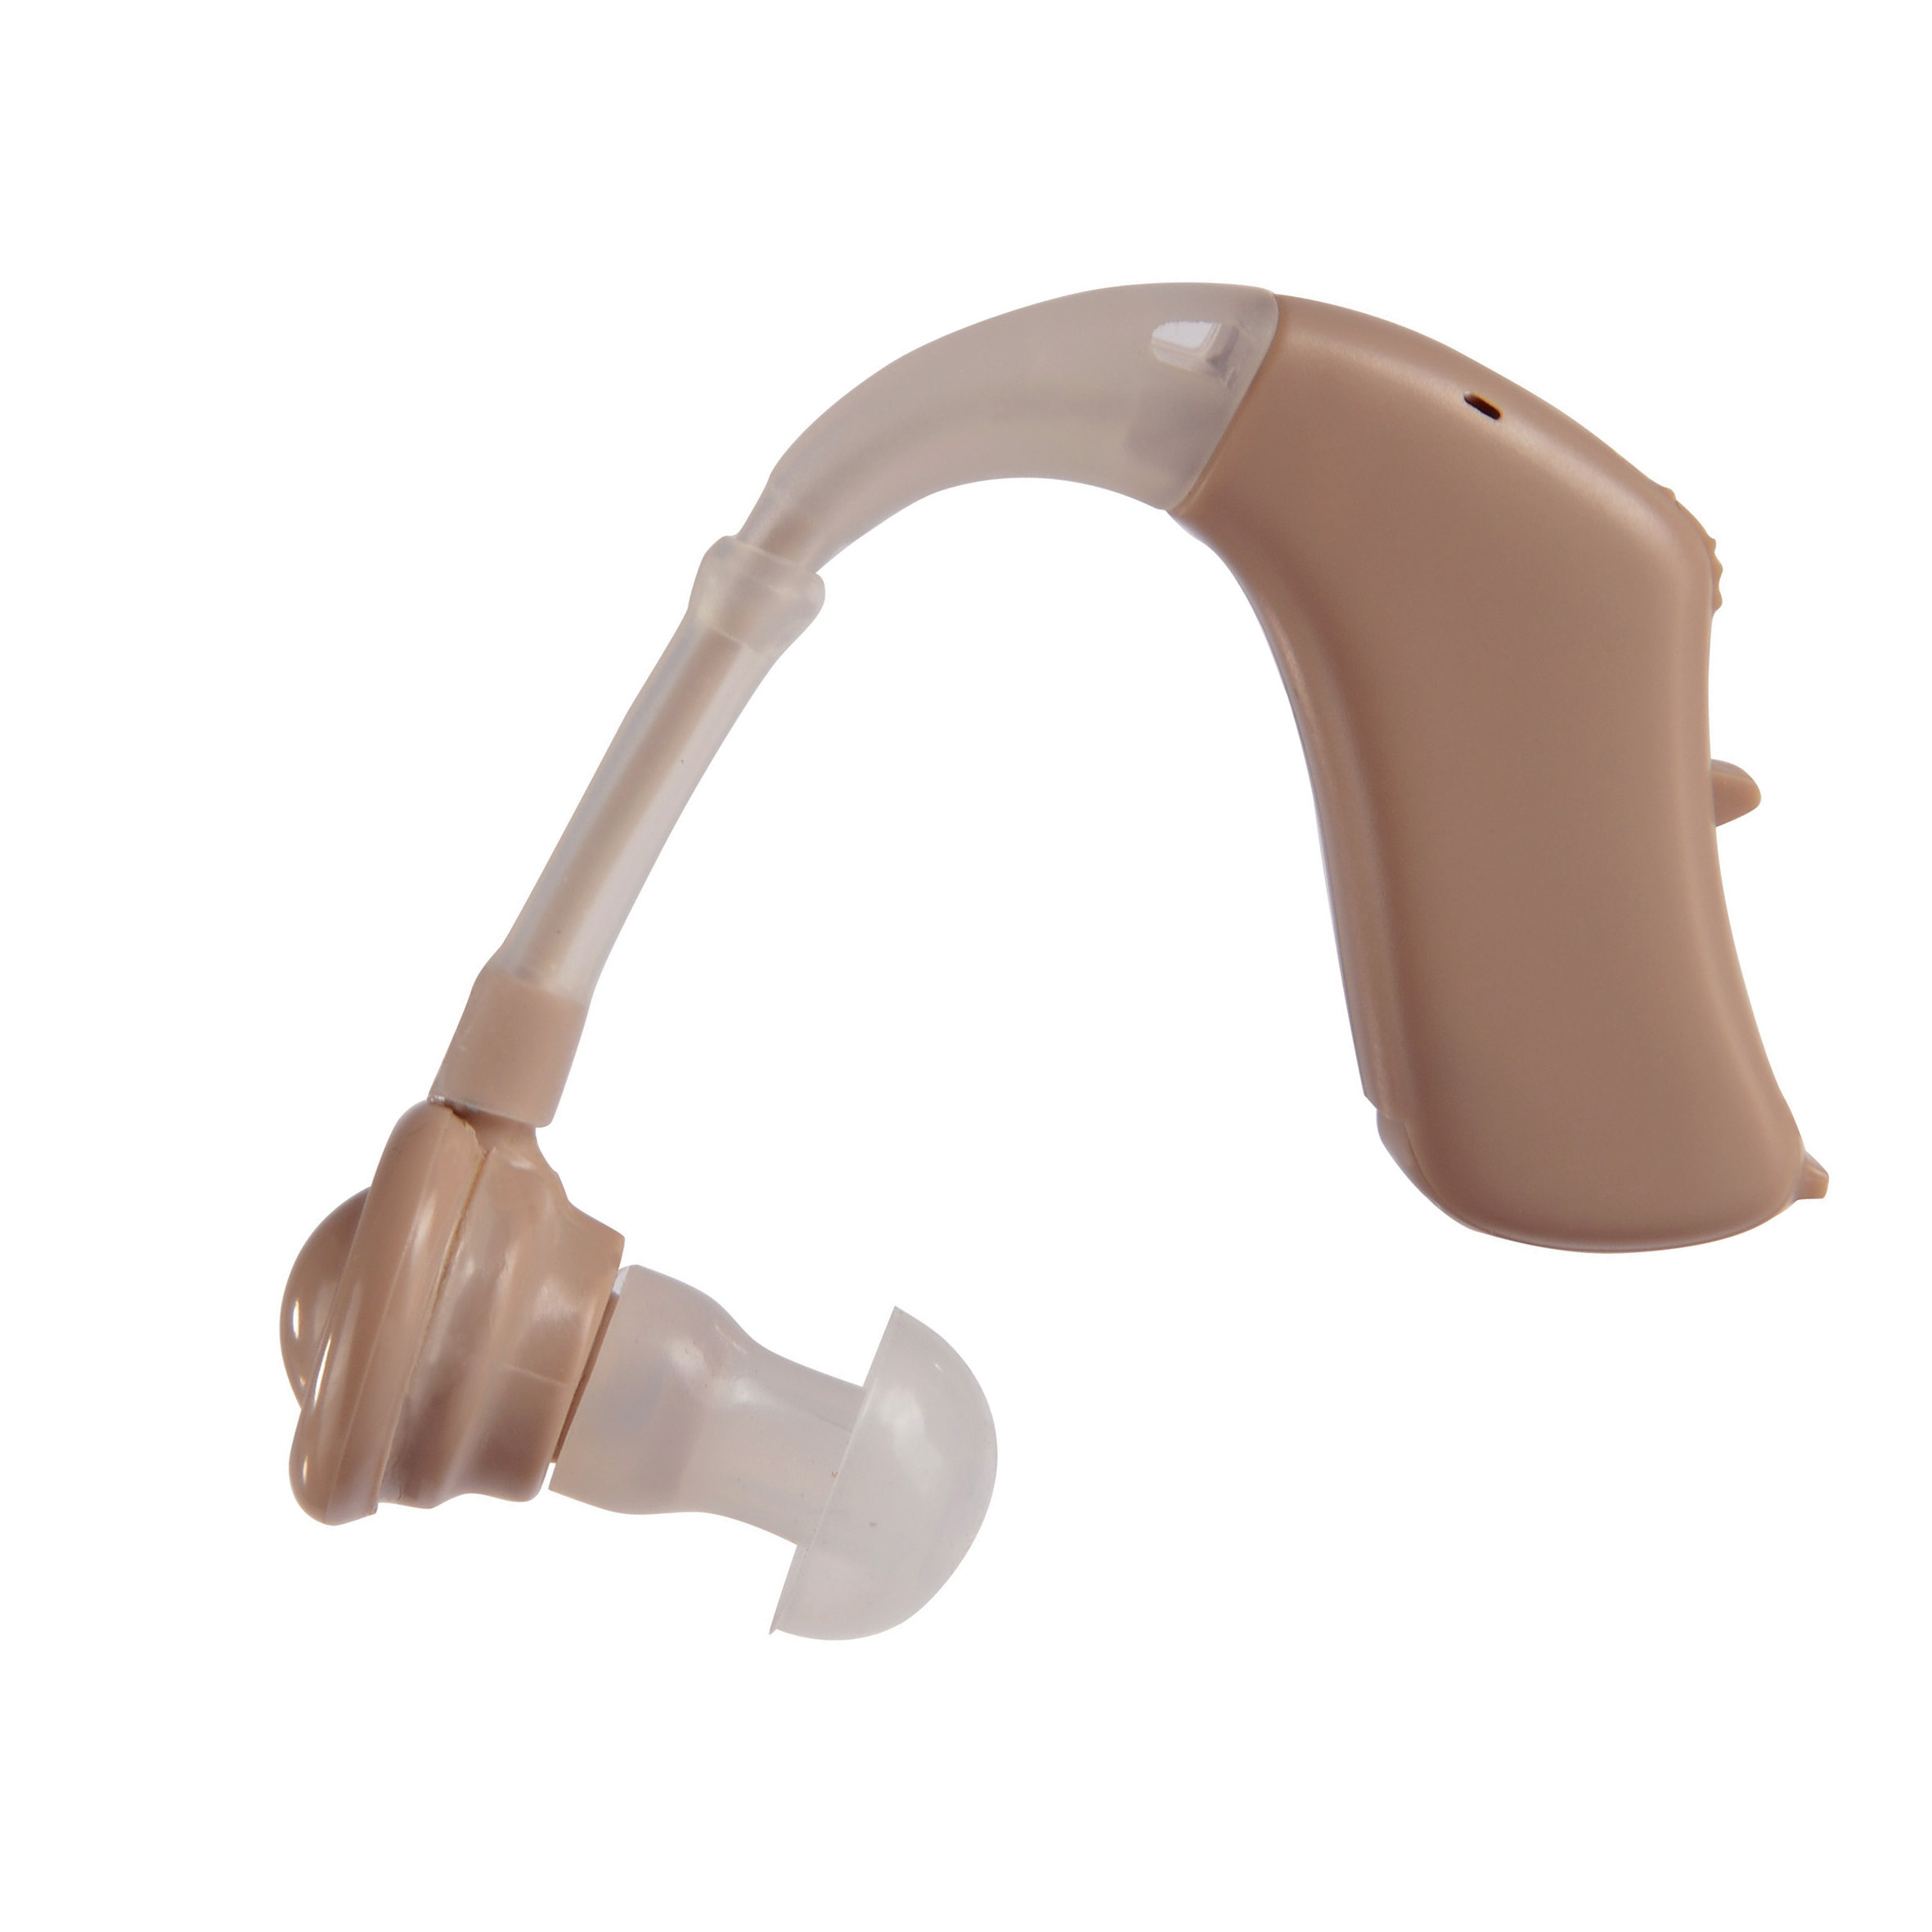 Hearing aid online